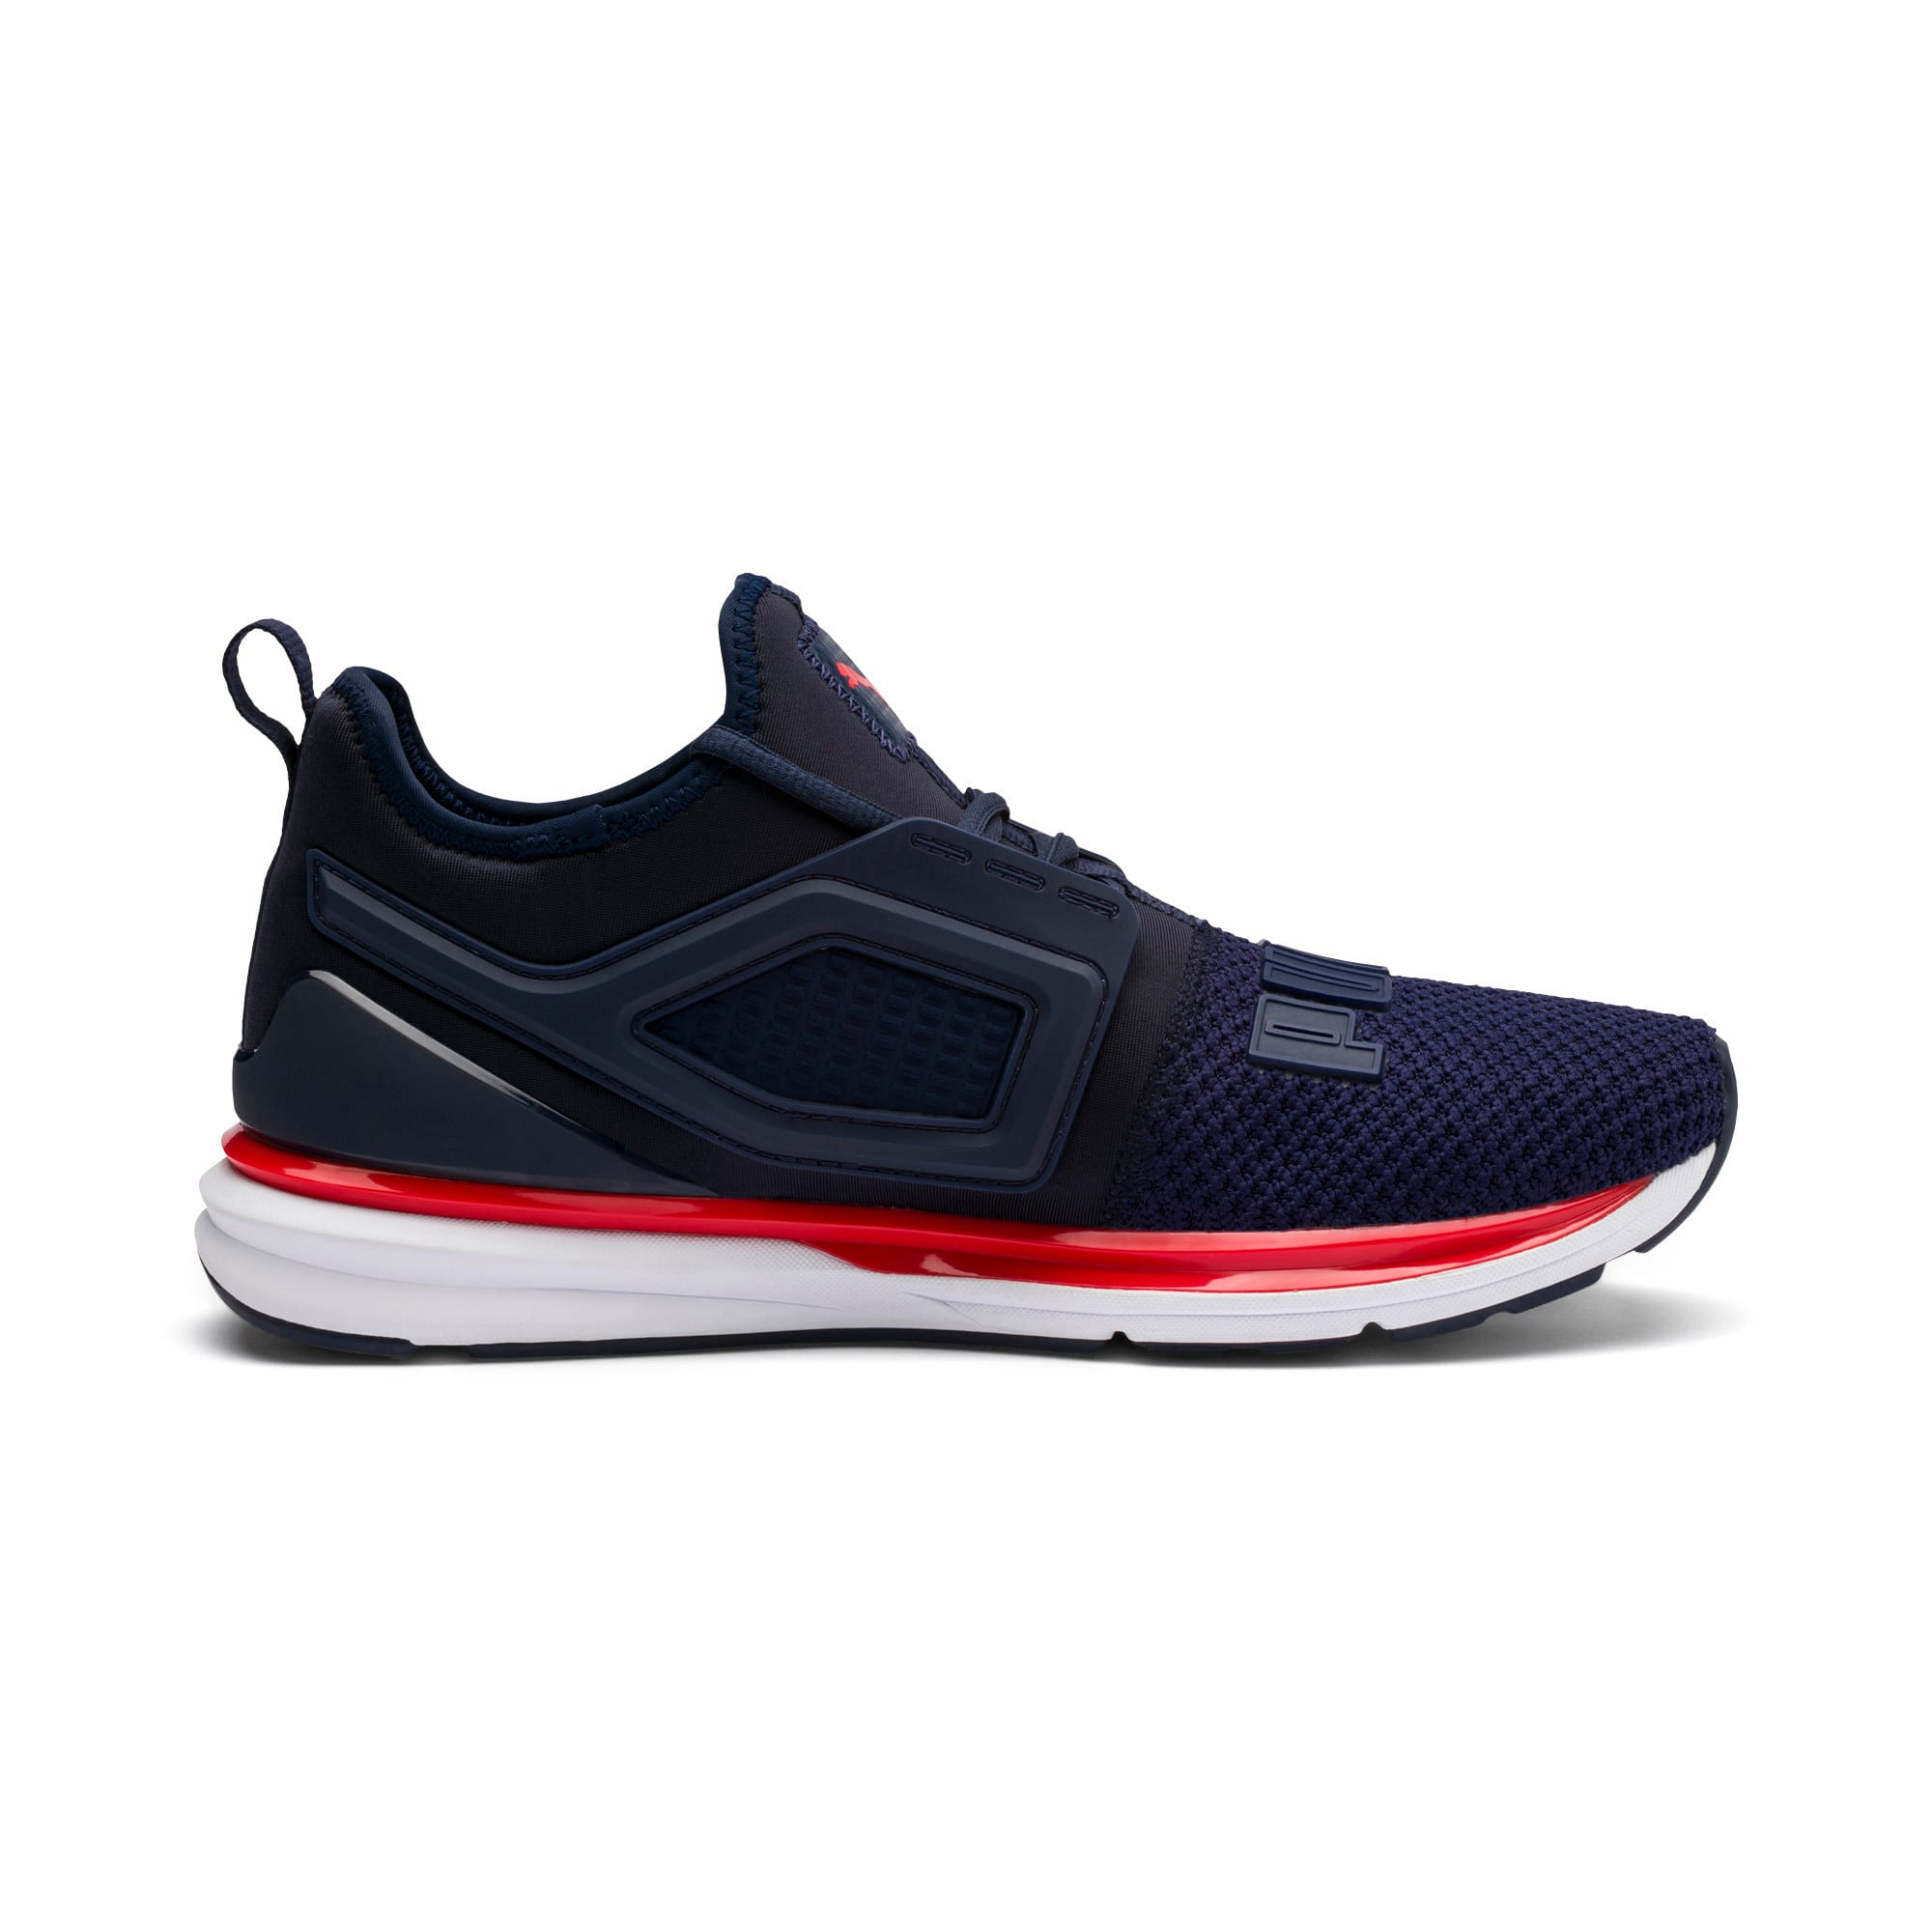 Thumbnail 5 of Chaussure de course IGNITE Limitless 2, Peacoat-High Risk Red, medium